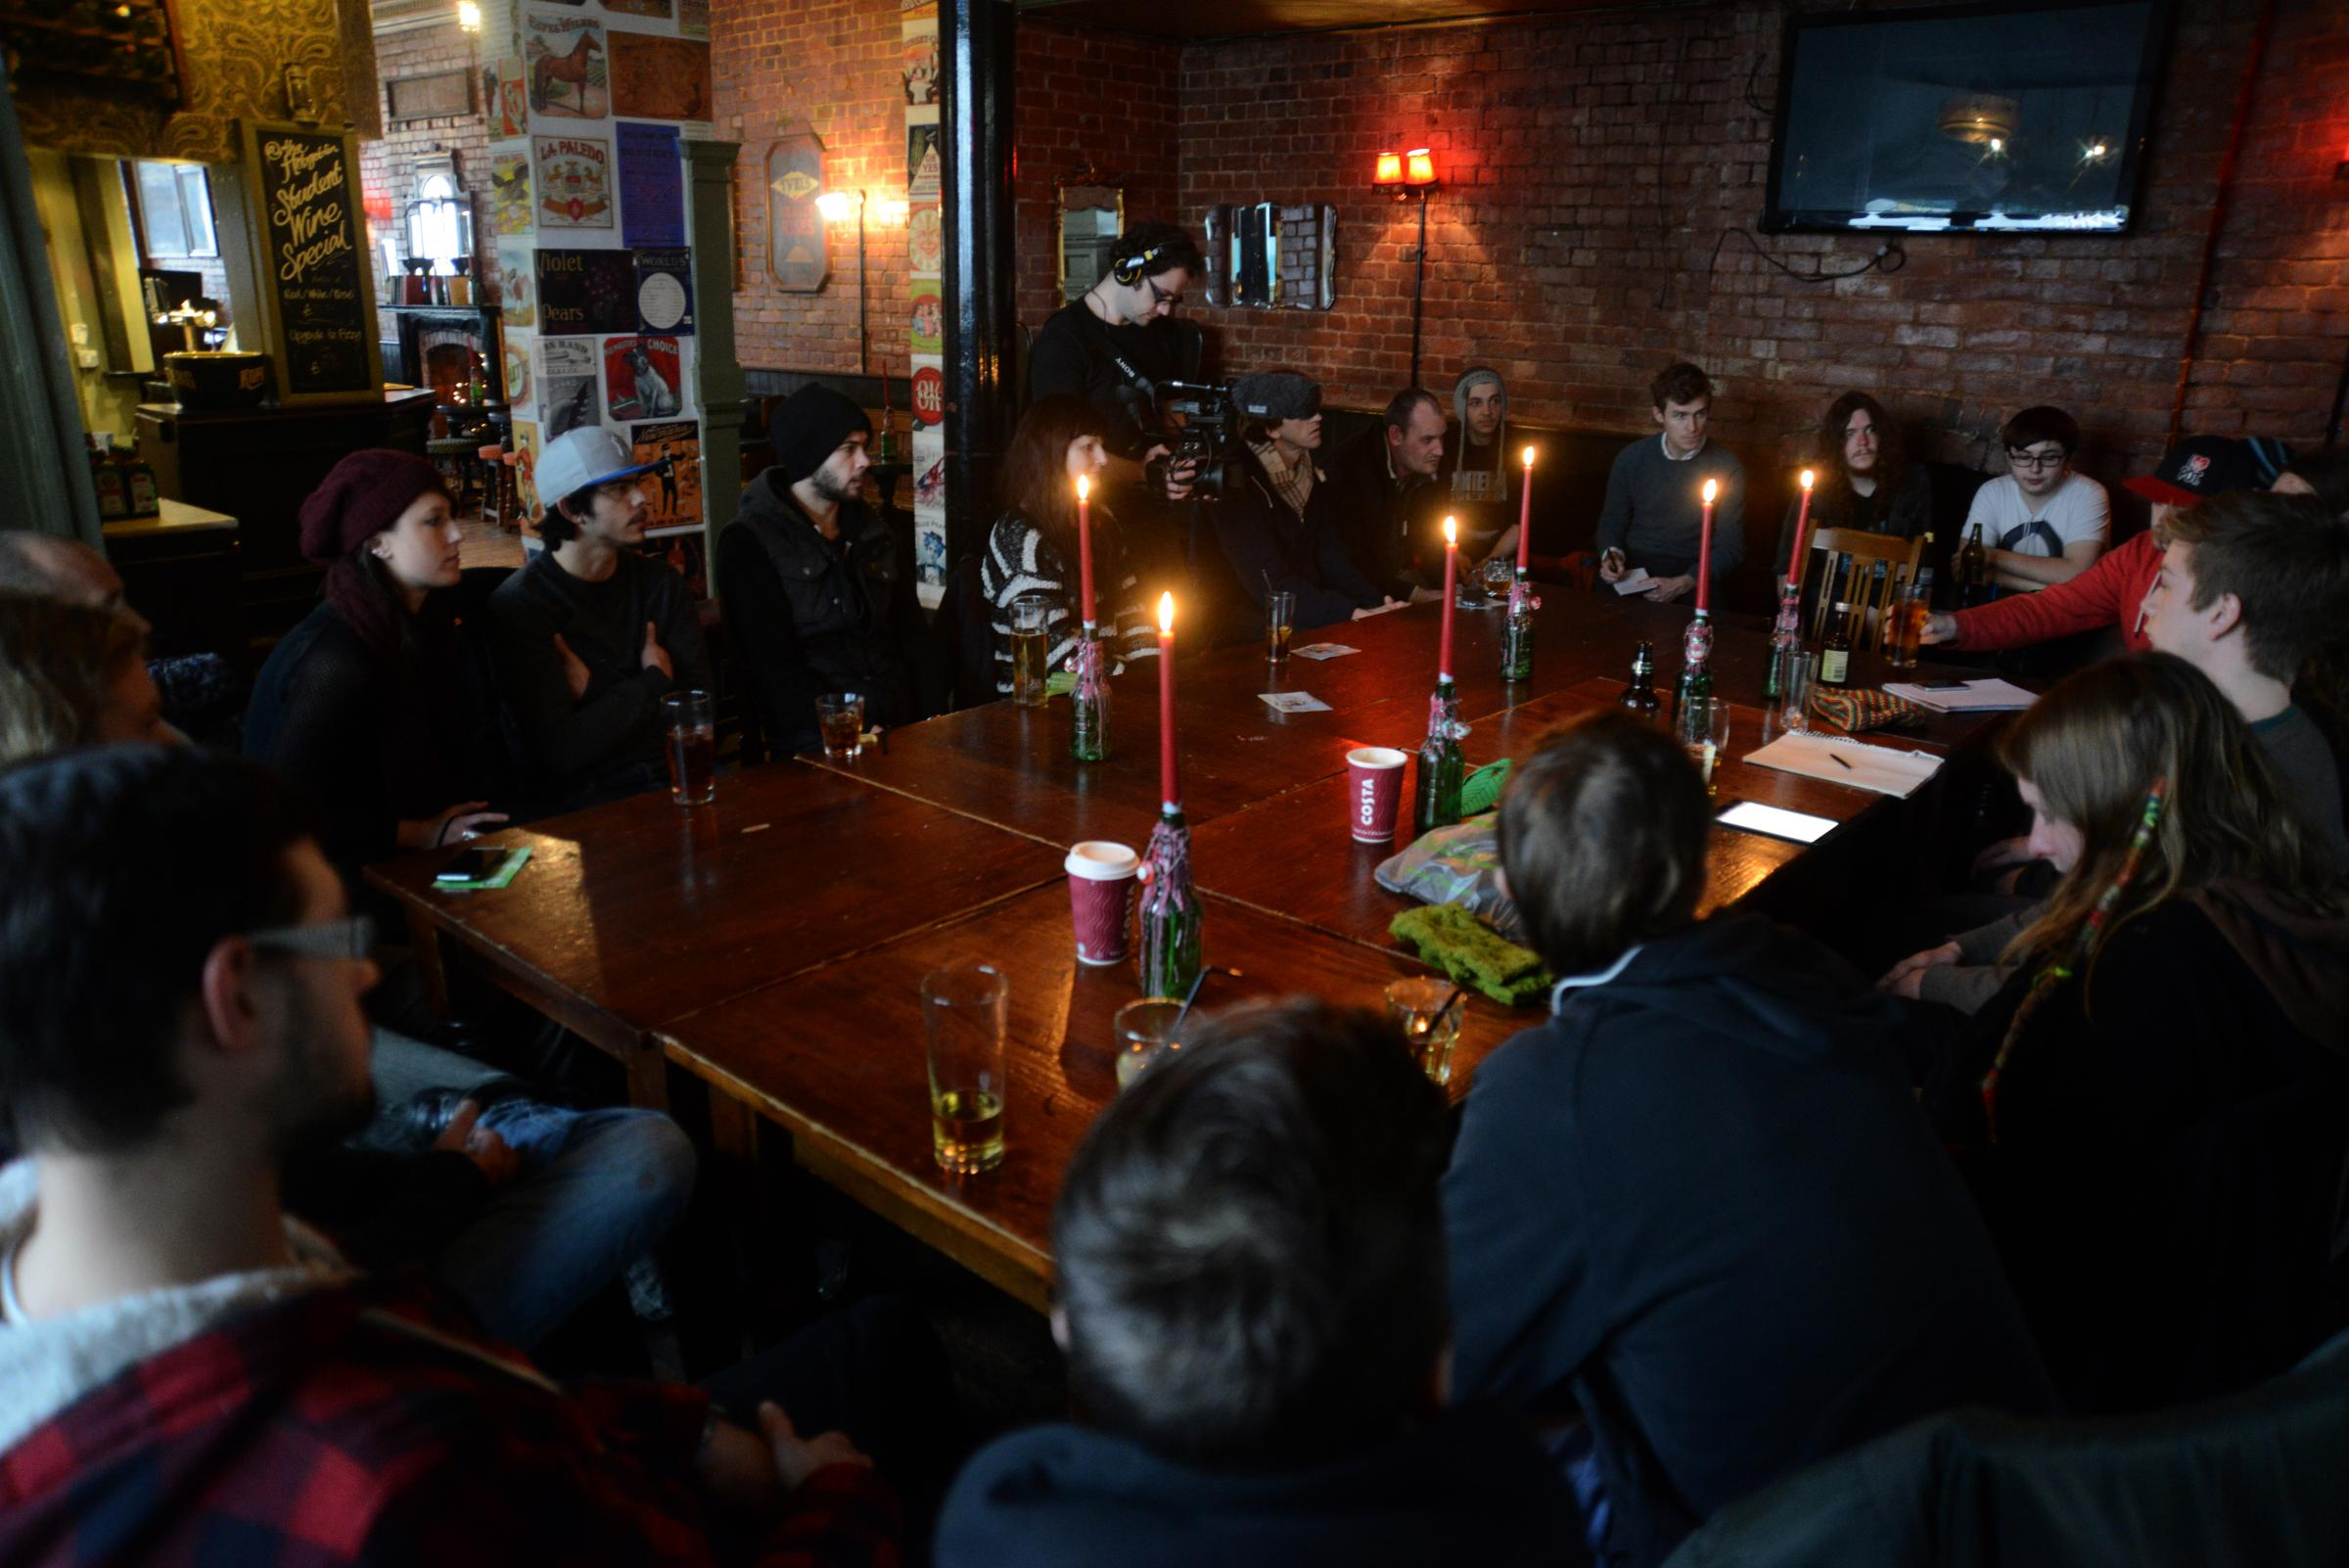 The first meeting of the Brighton Cannabis Club